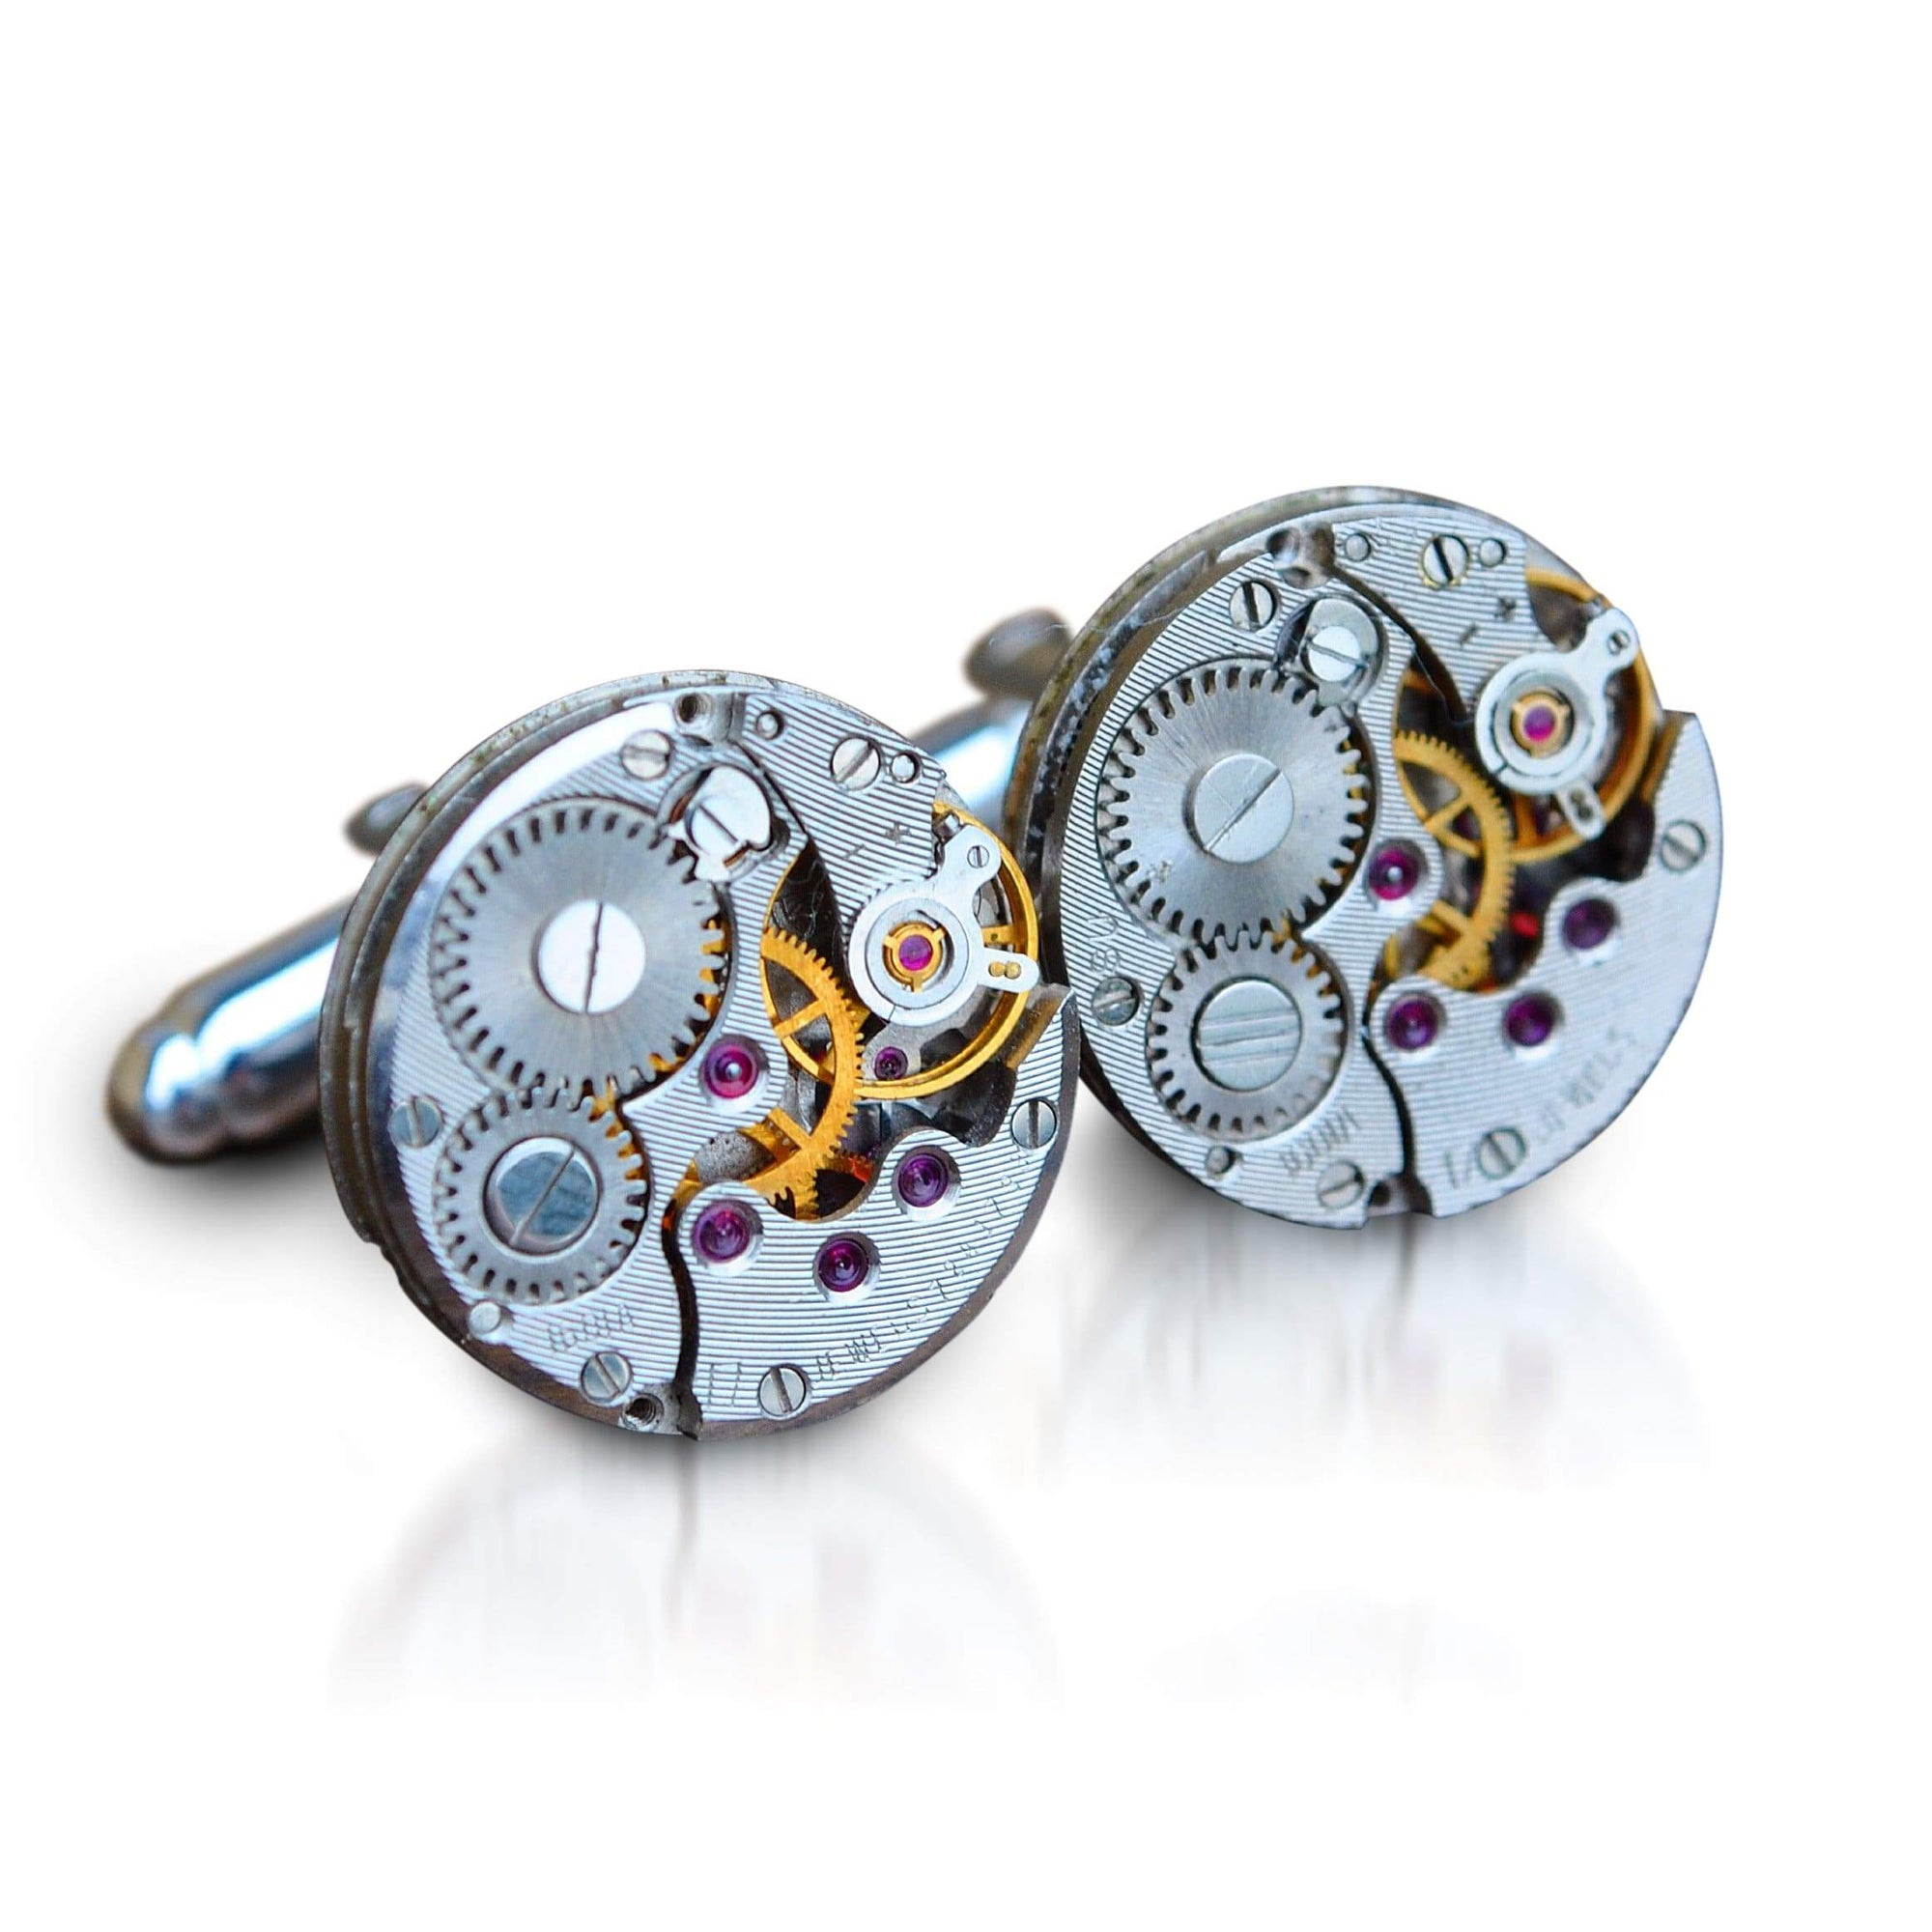 Men's Cufflinks | Lingo Luxe The Connery-Lingo Luxe Bespoke